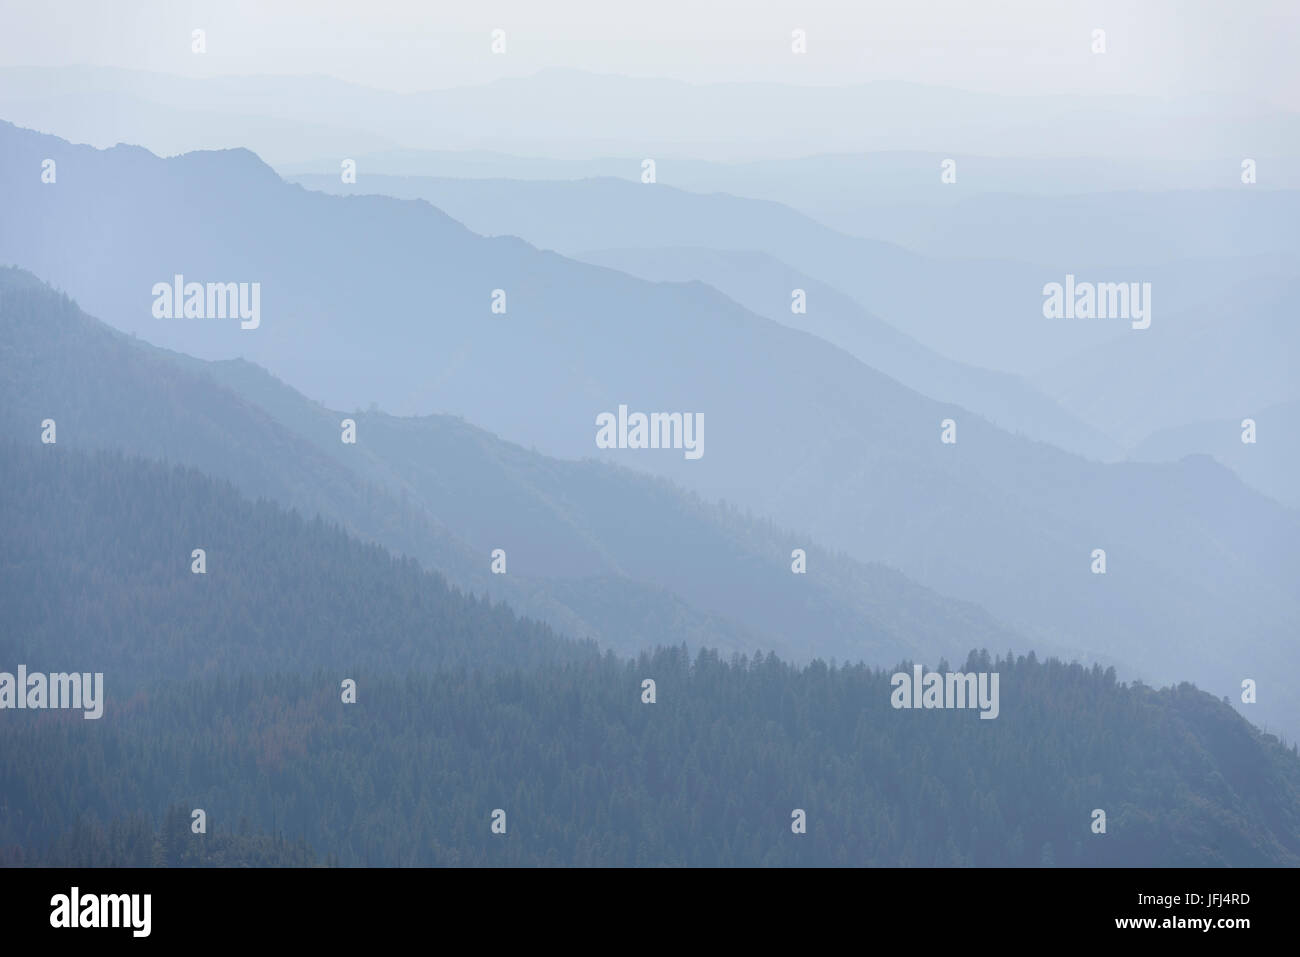 Hazy view about the Yosemite valley, the USA, California Stock Photo